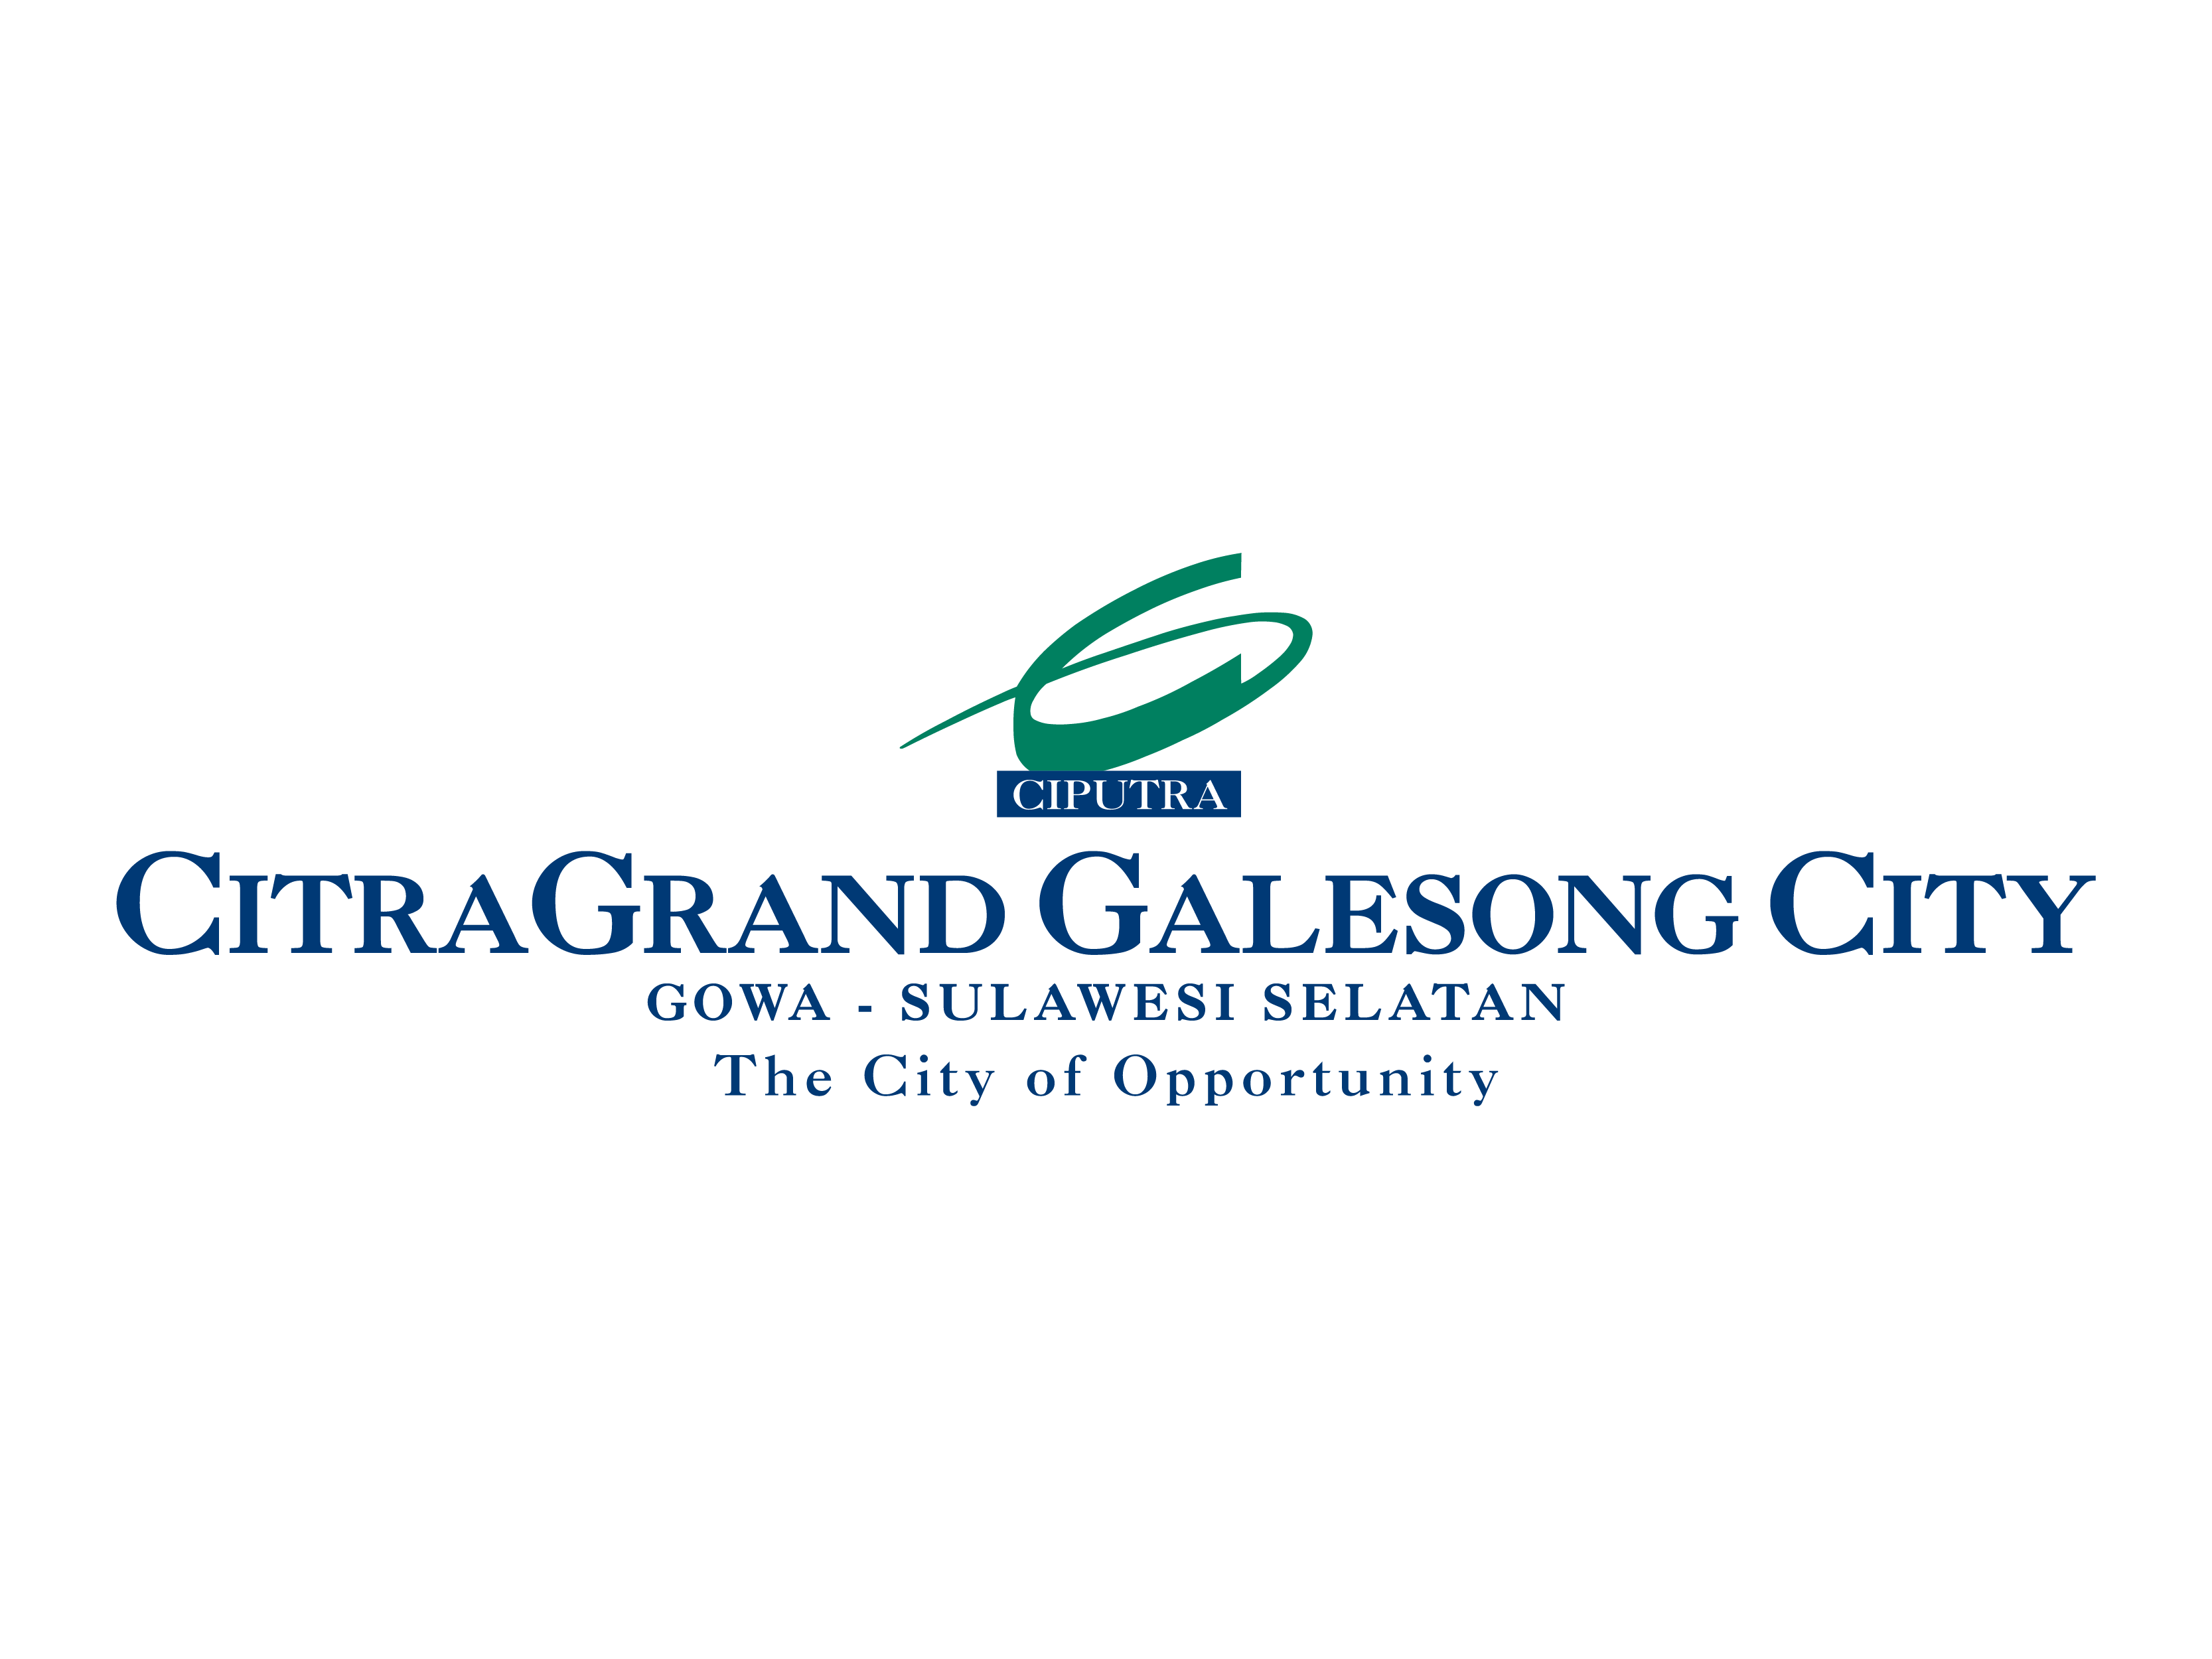 Citra Grand Galesong City Gowa